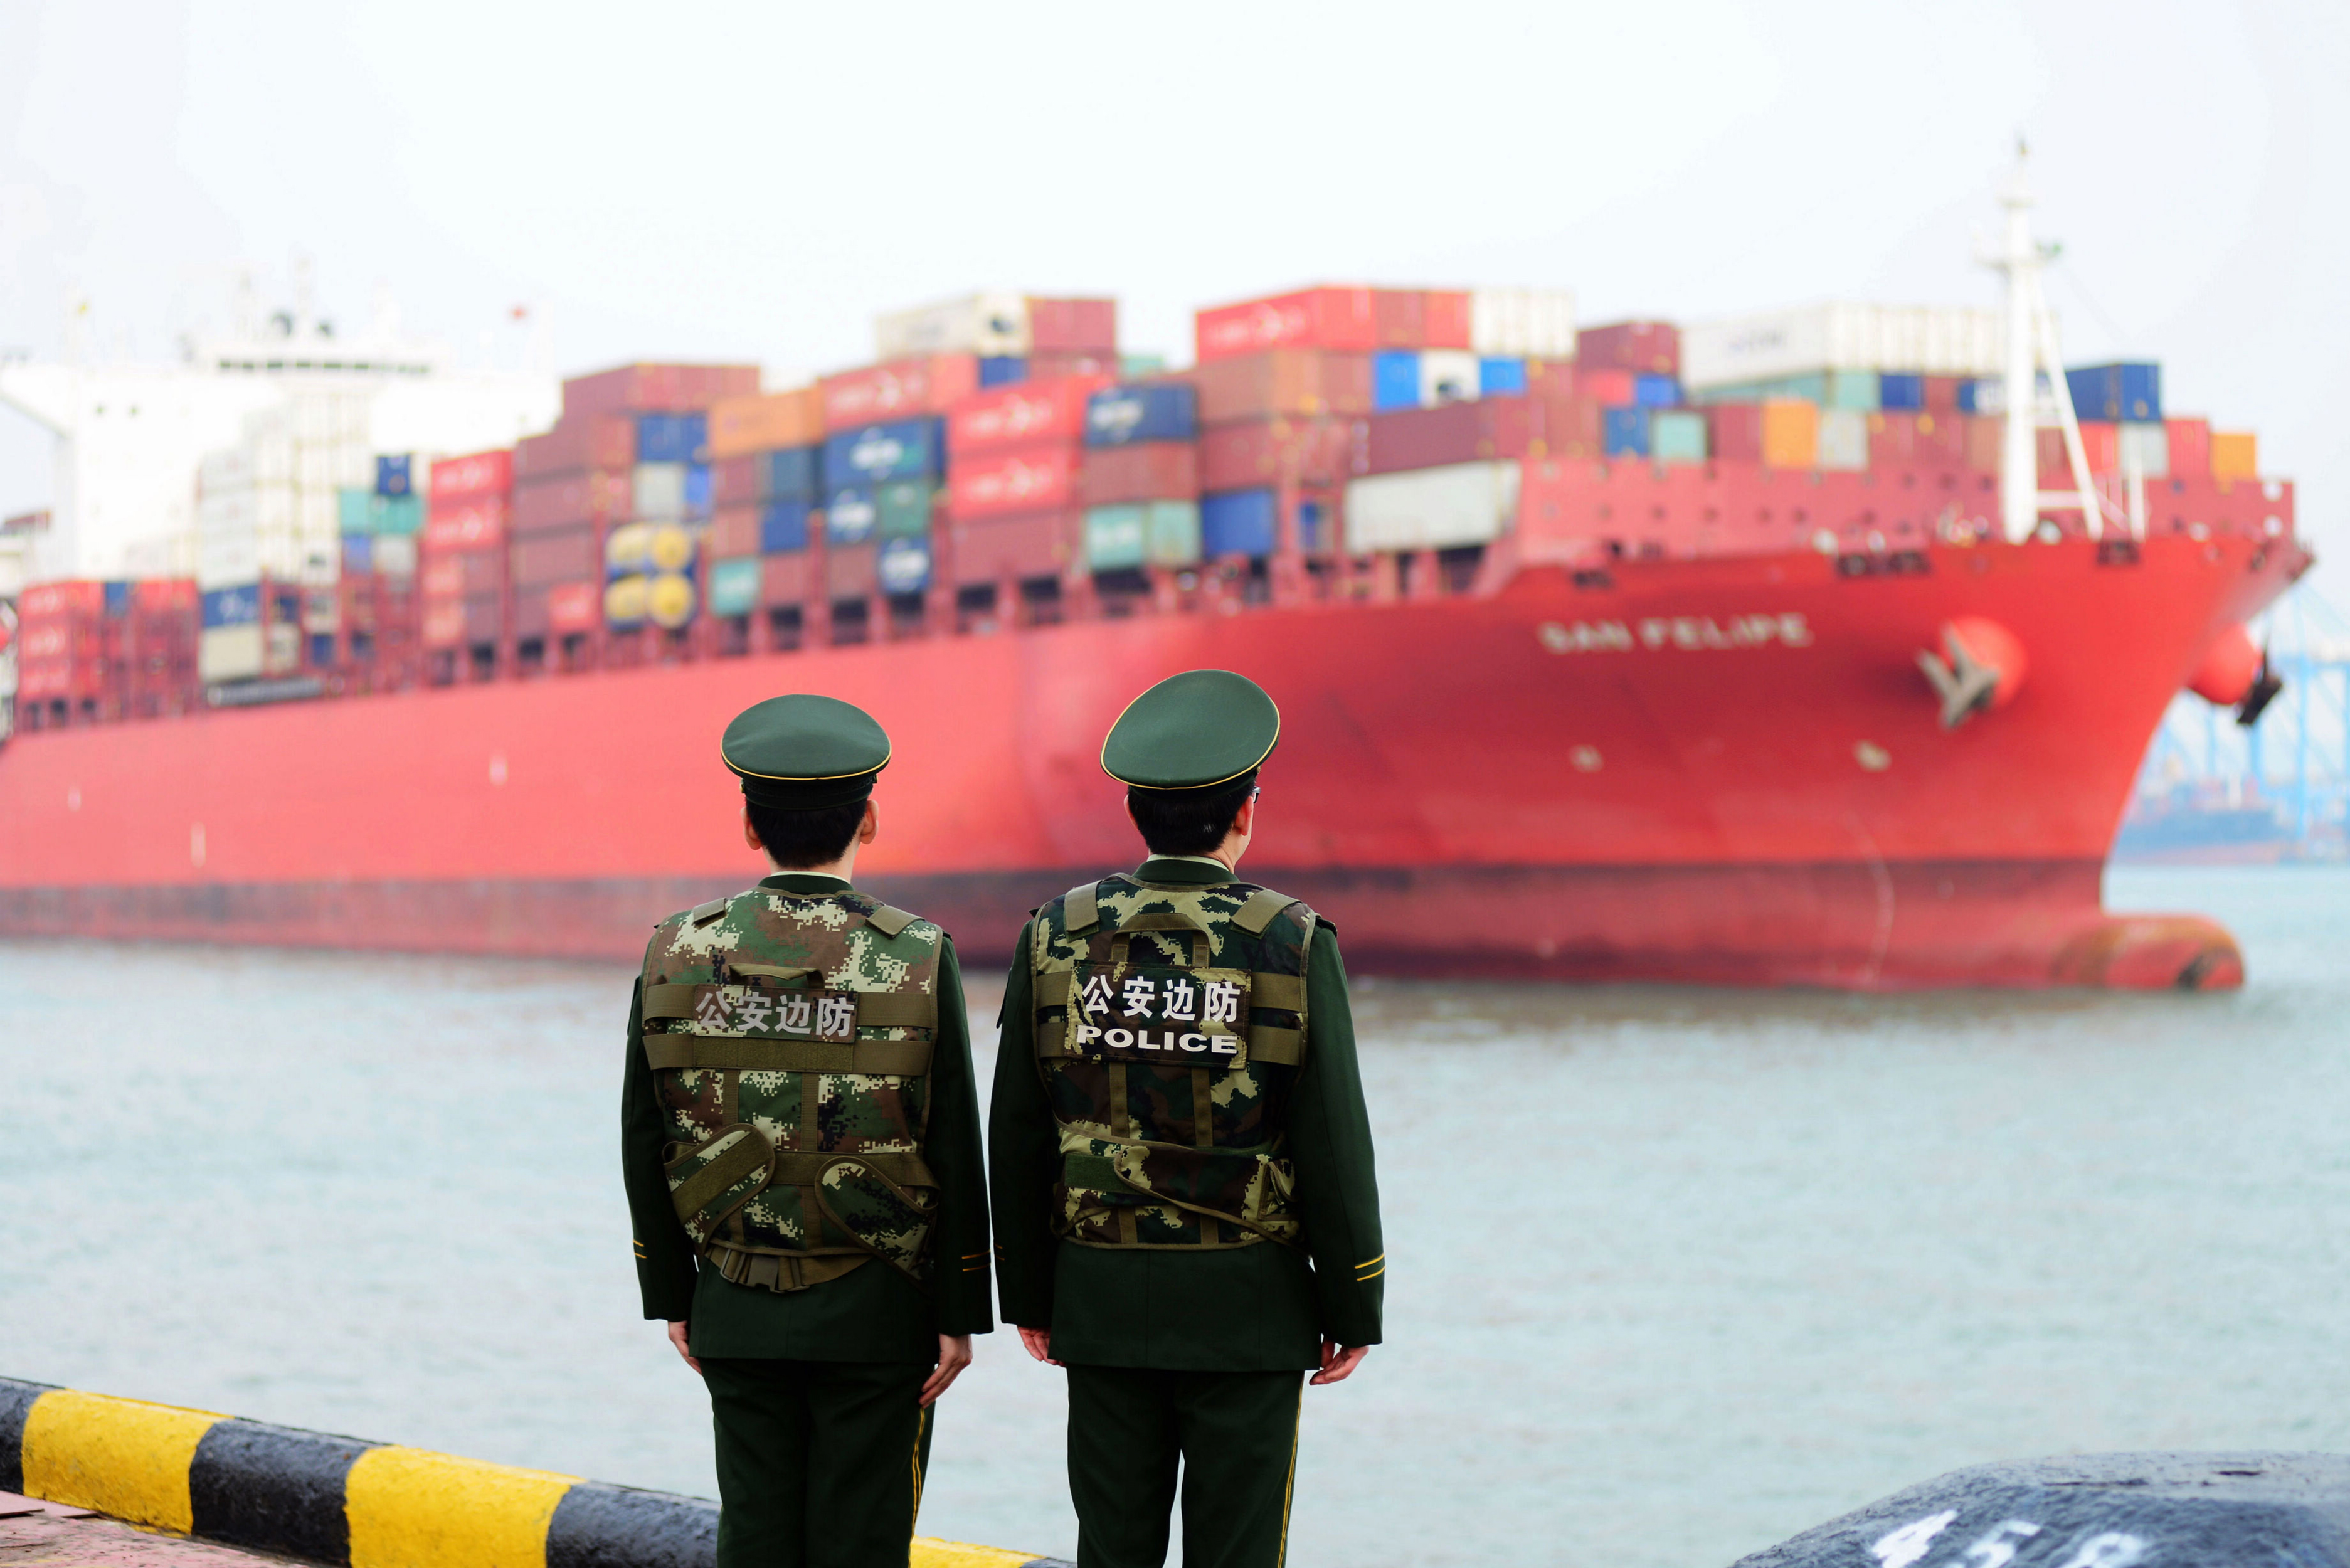 Chinese police officers watch a cargo ship at a port in Qingdao in China's eastern Shandong province on March 8, 2018. China's trade surplus with the United States narrowed for a second month in a row in February, dropping to 21 billion USD, official data showed on March 8, amid rising trade tensions with the Trump administration. / AFP PHOTO / - / China OUT (Photo credit should read -/AFP/Getty Images)